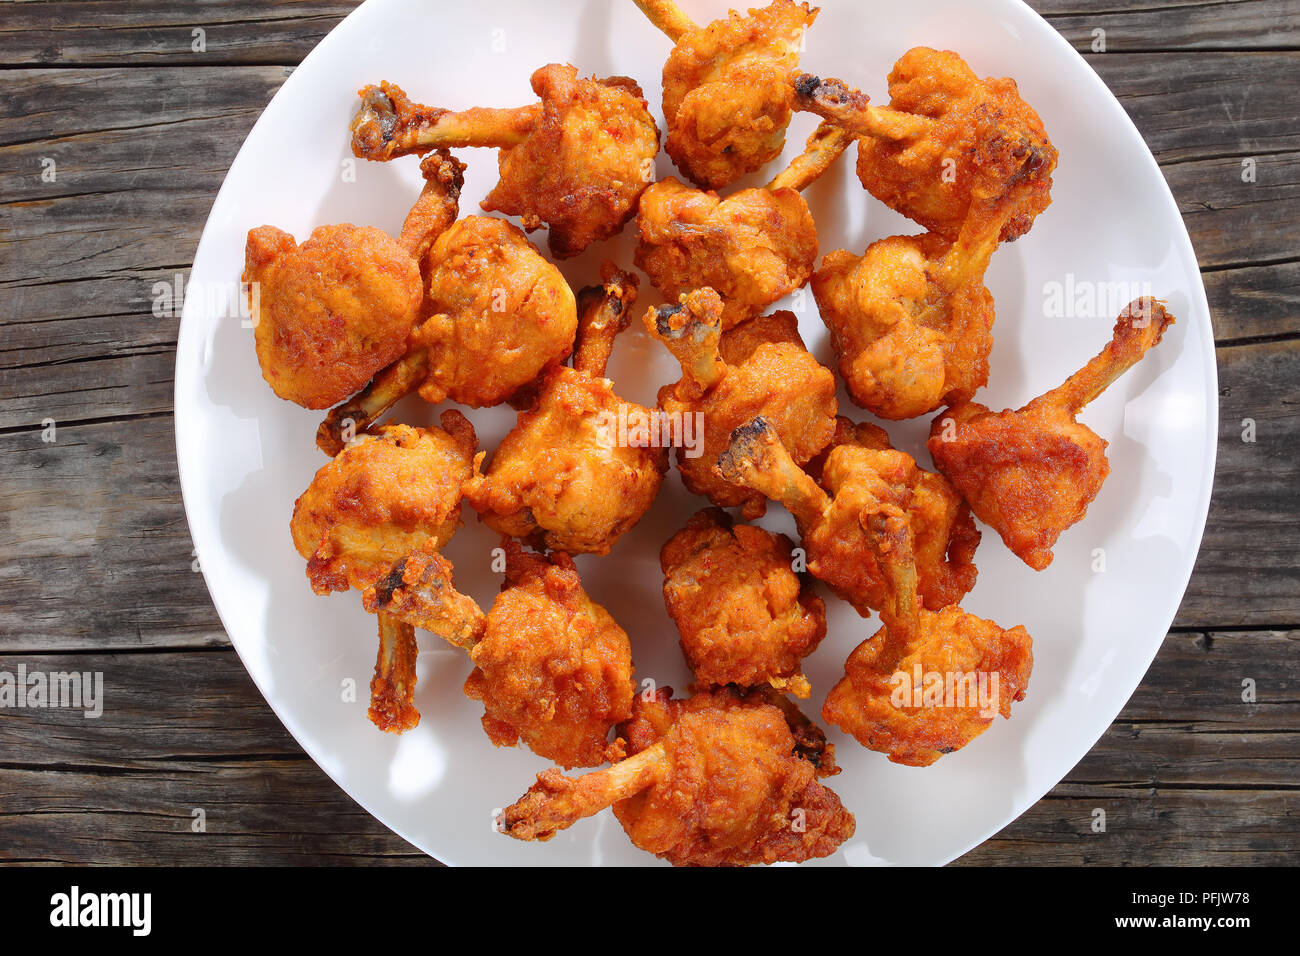 delicious deep fried battered crispy chicken winglets on a white plate on dark wooden table, horizontal view from above - Stock Image